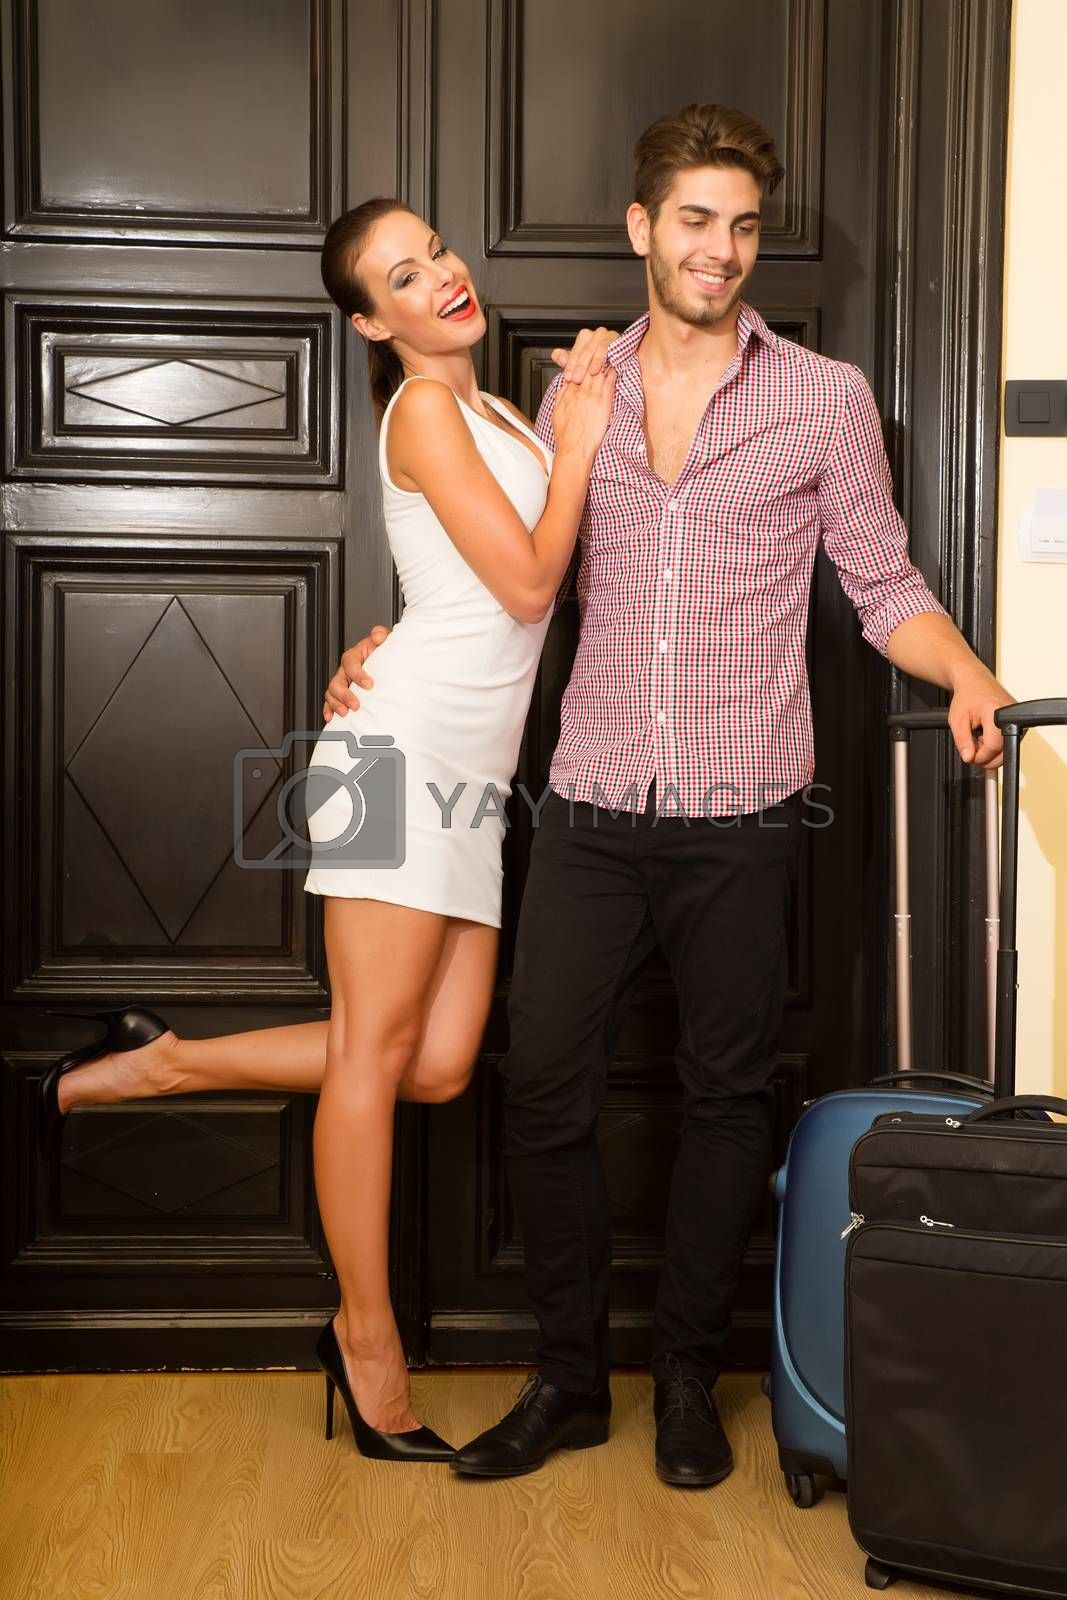 A young couple flirting at the door on their honeymoon